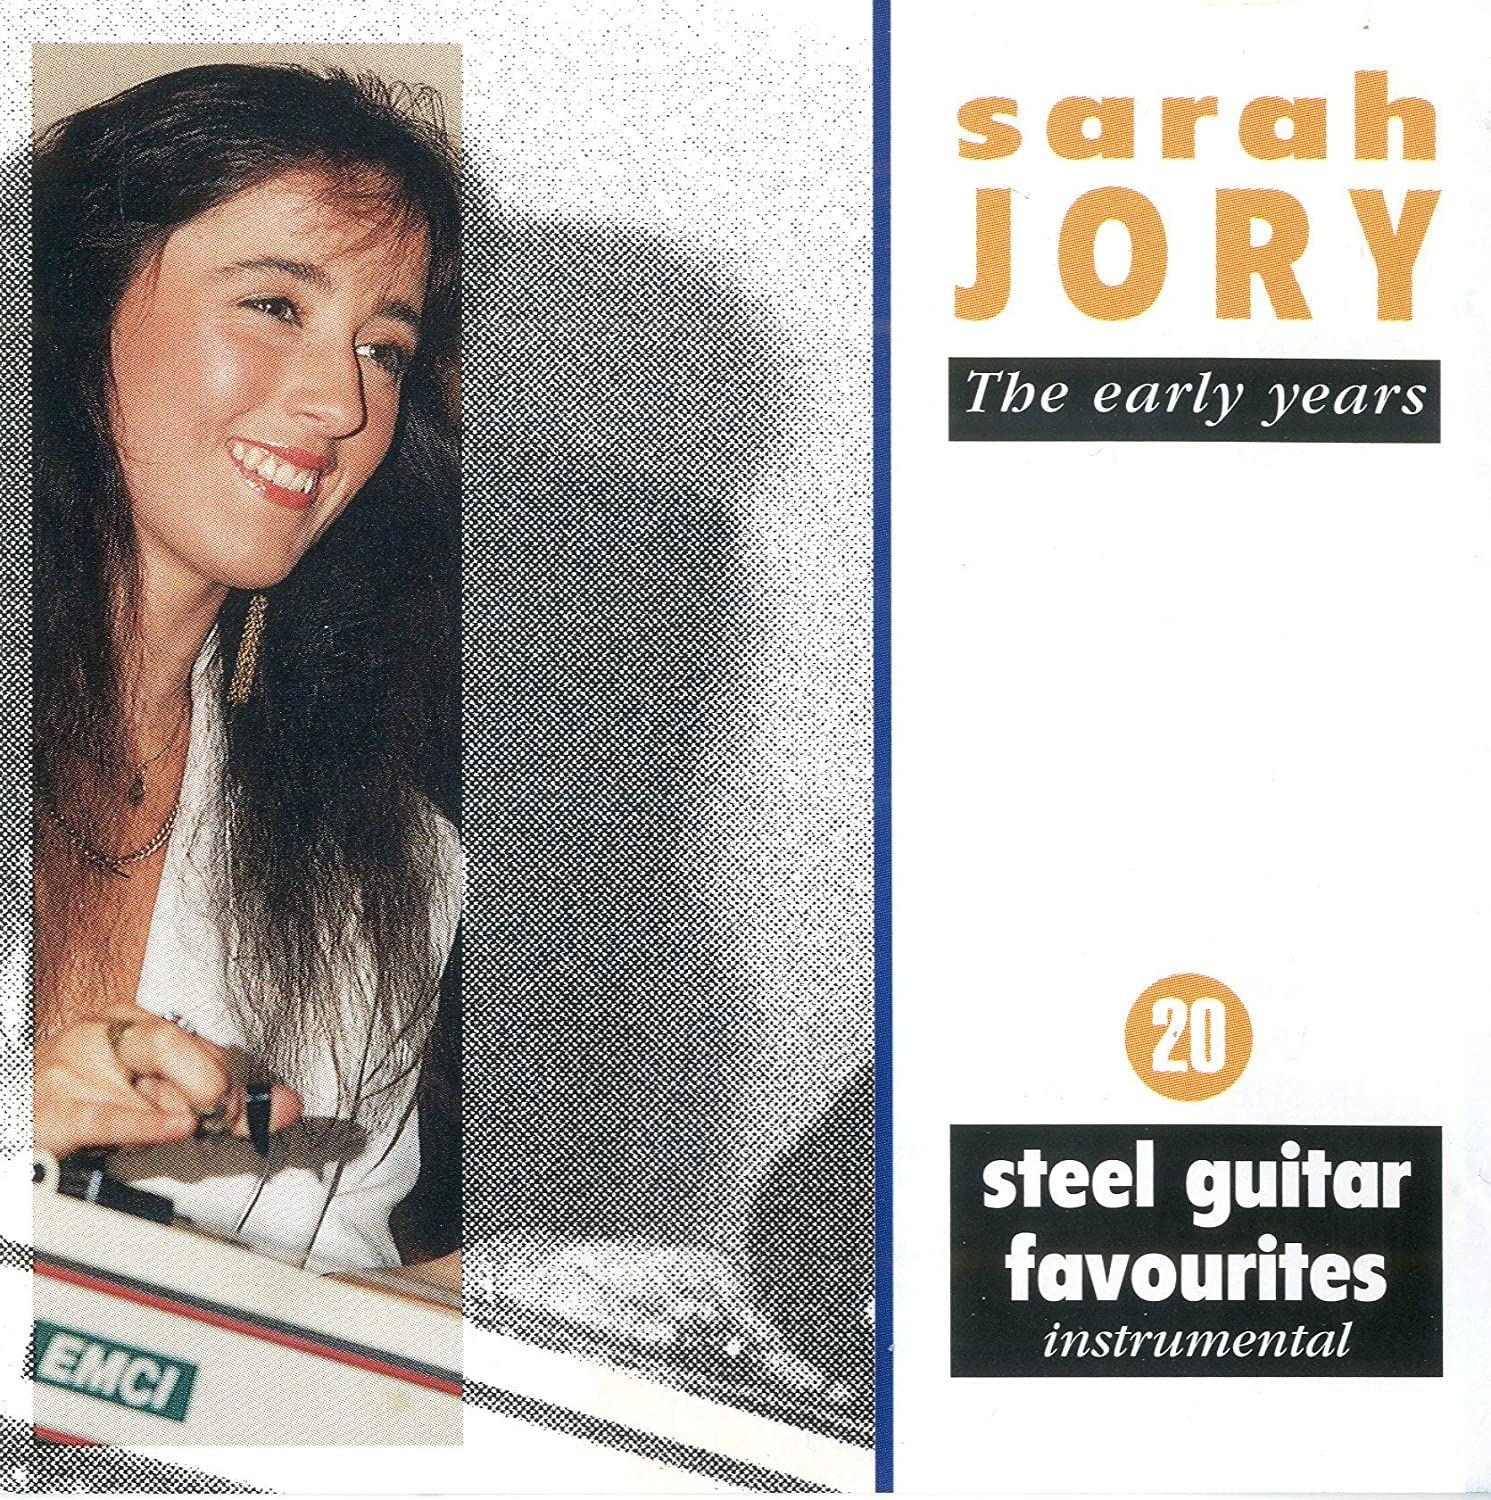 20 Steel Guitar Favourites                                                                                                                                                                                                                                                    <span class=